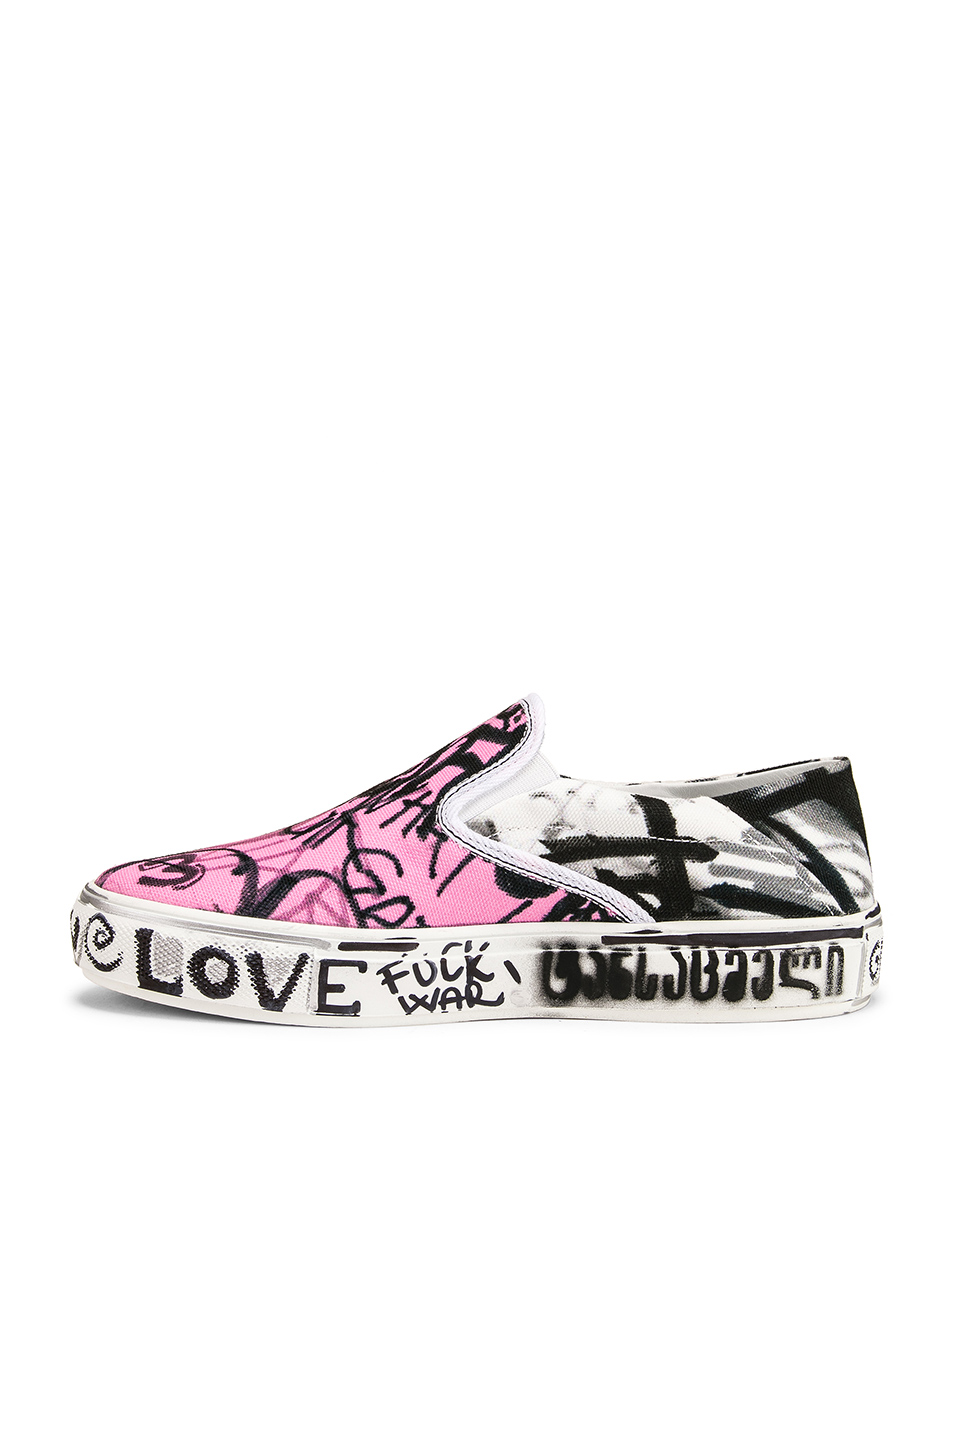 VETEMENTS Graffiti Slip On Sneakers